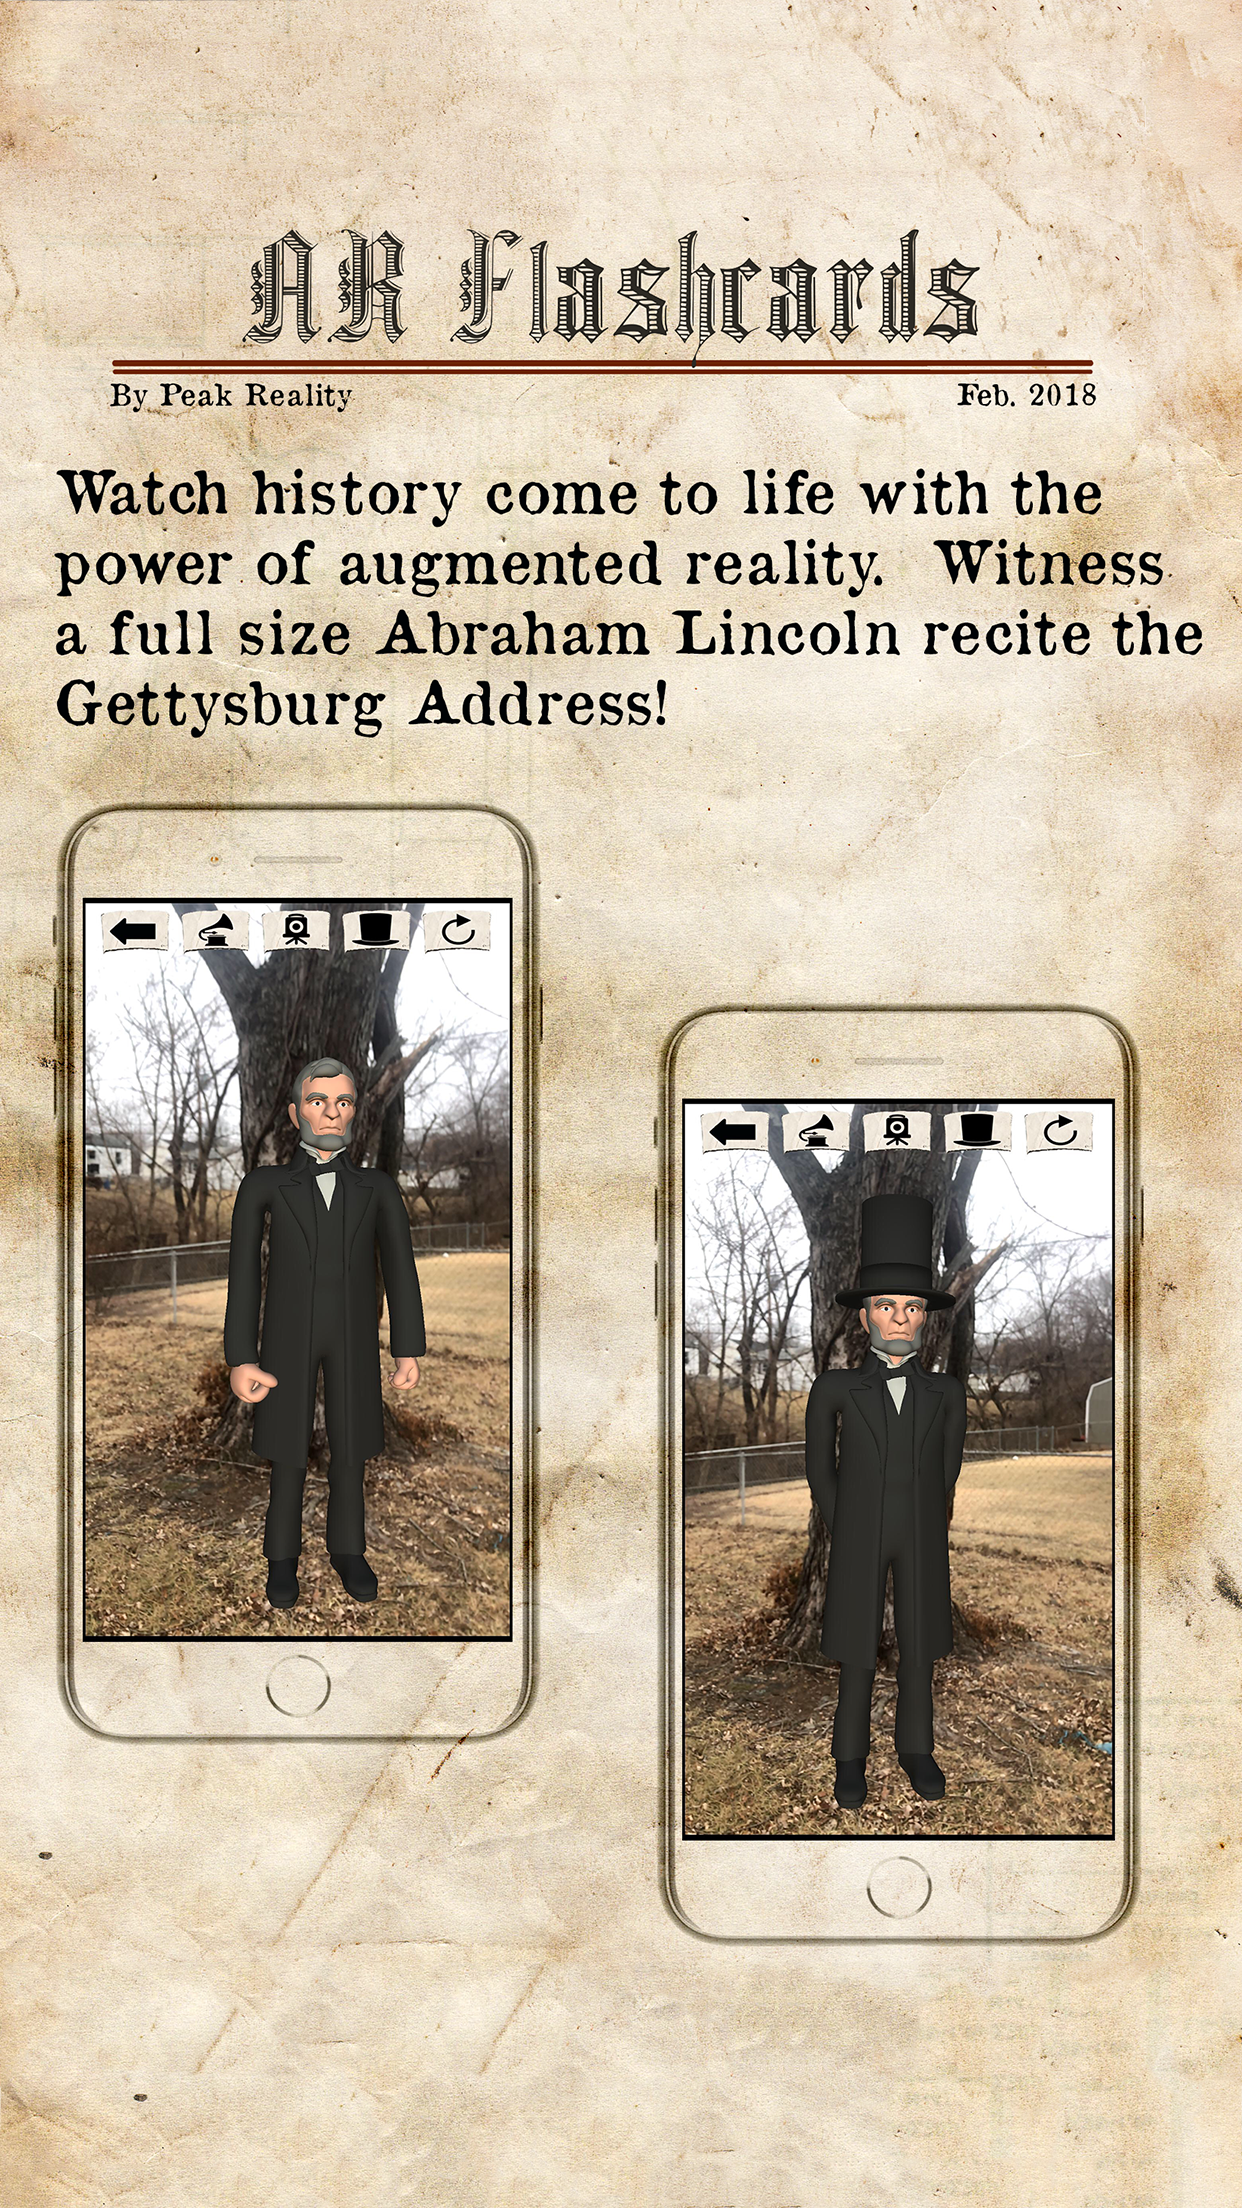 Peak Reality Releases Augmented Reality Abraham Lincoln Mobile App Image